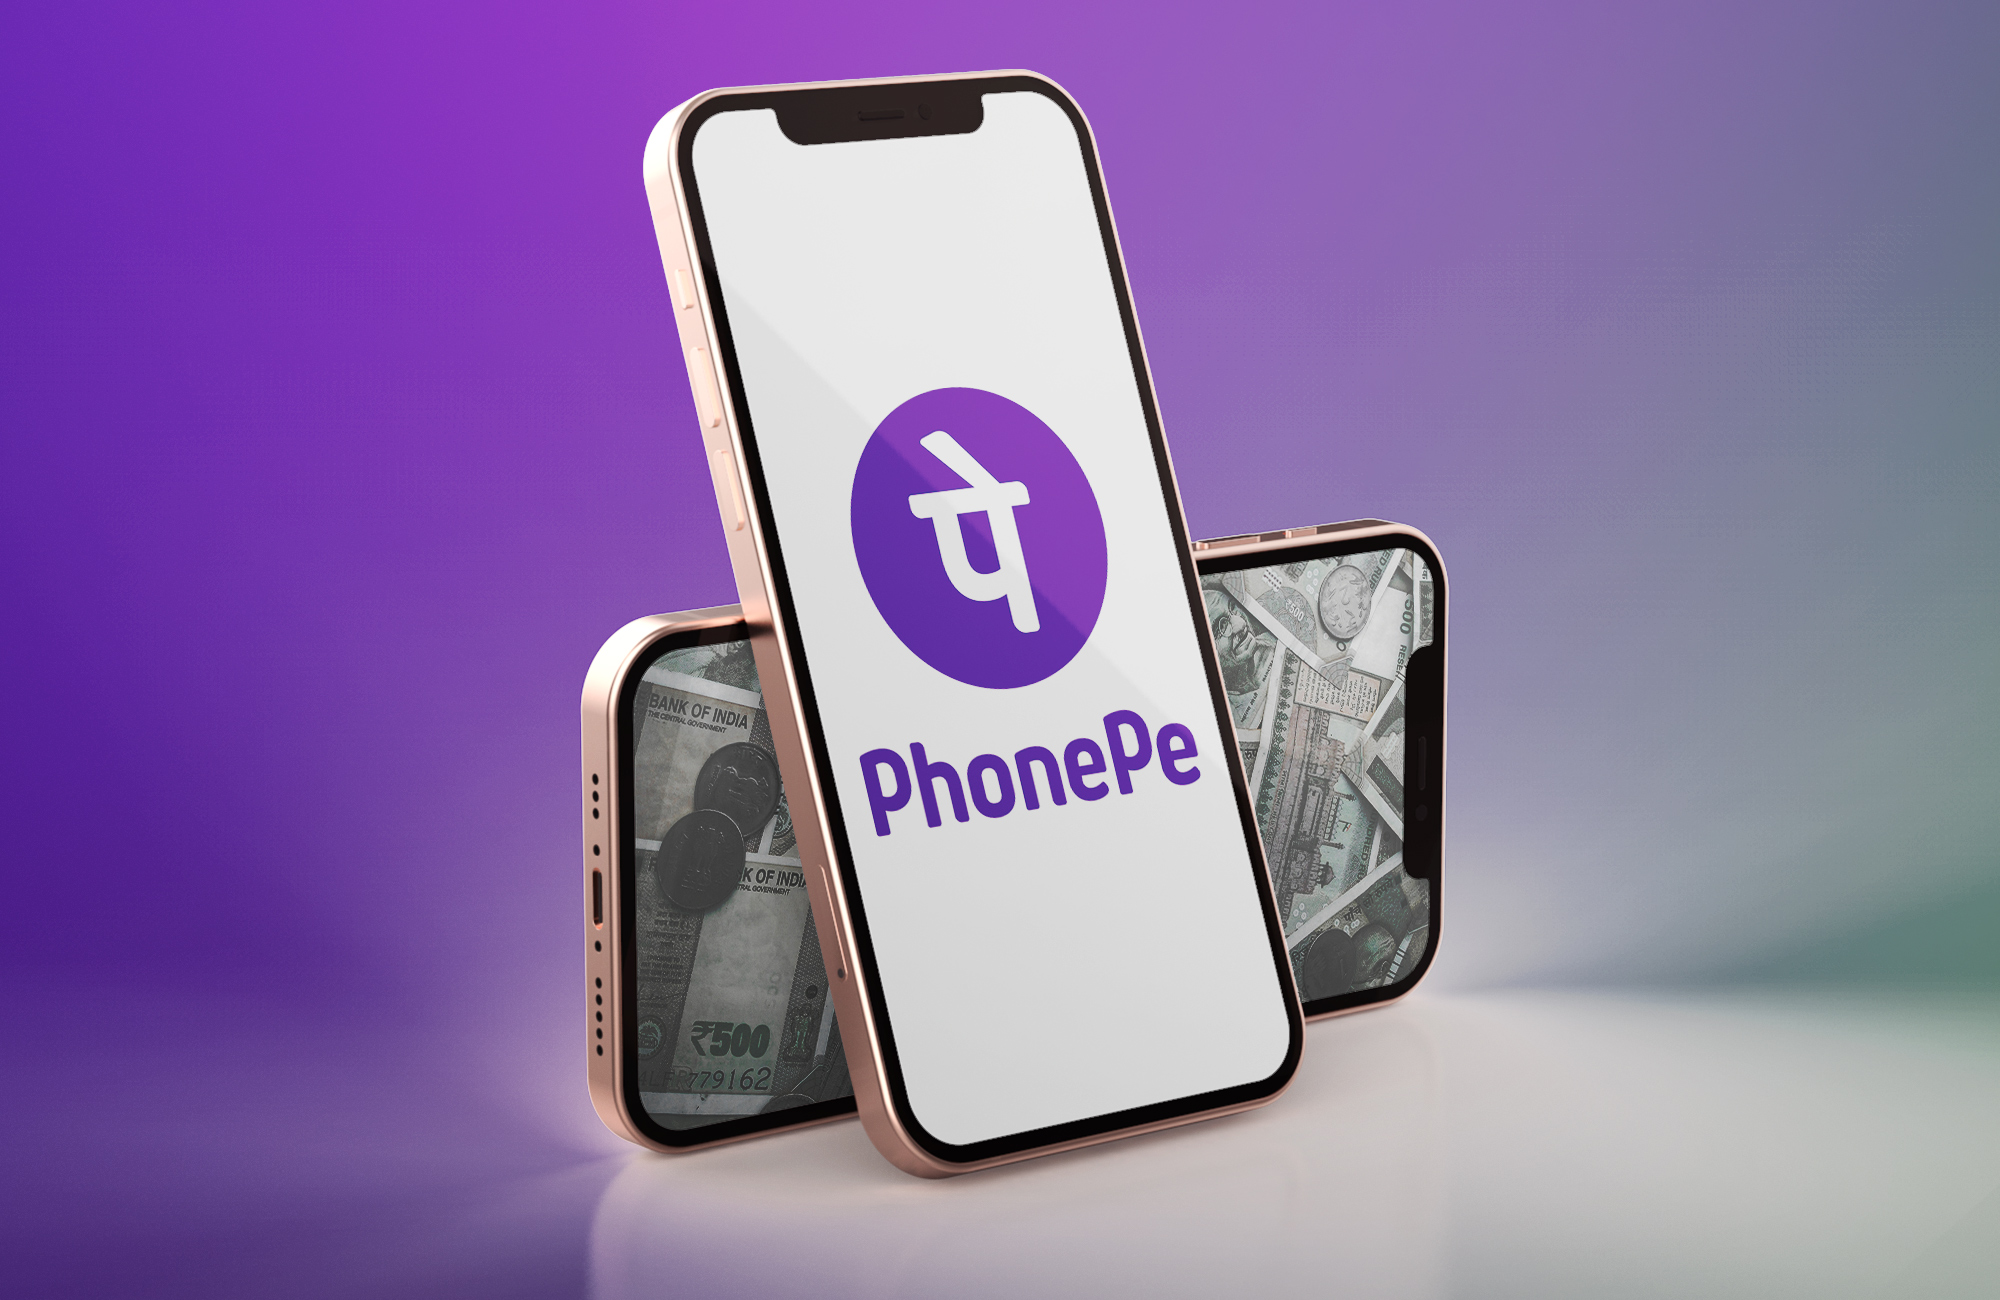 PhonePe logo displayed on Red and gold iPhone 12